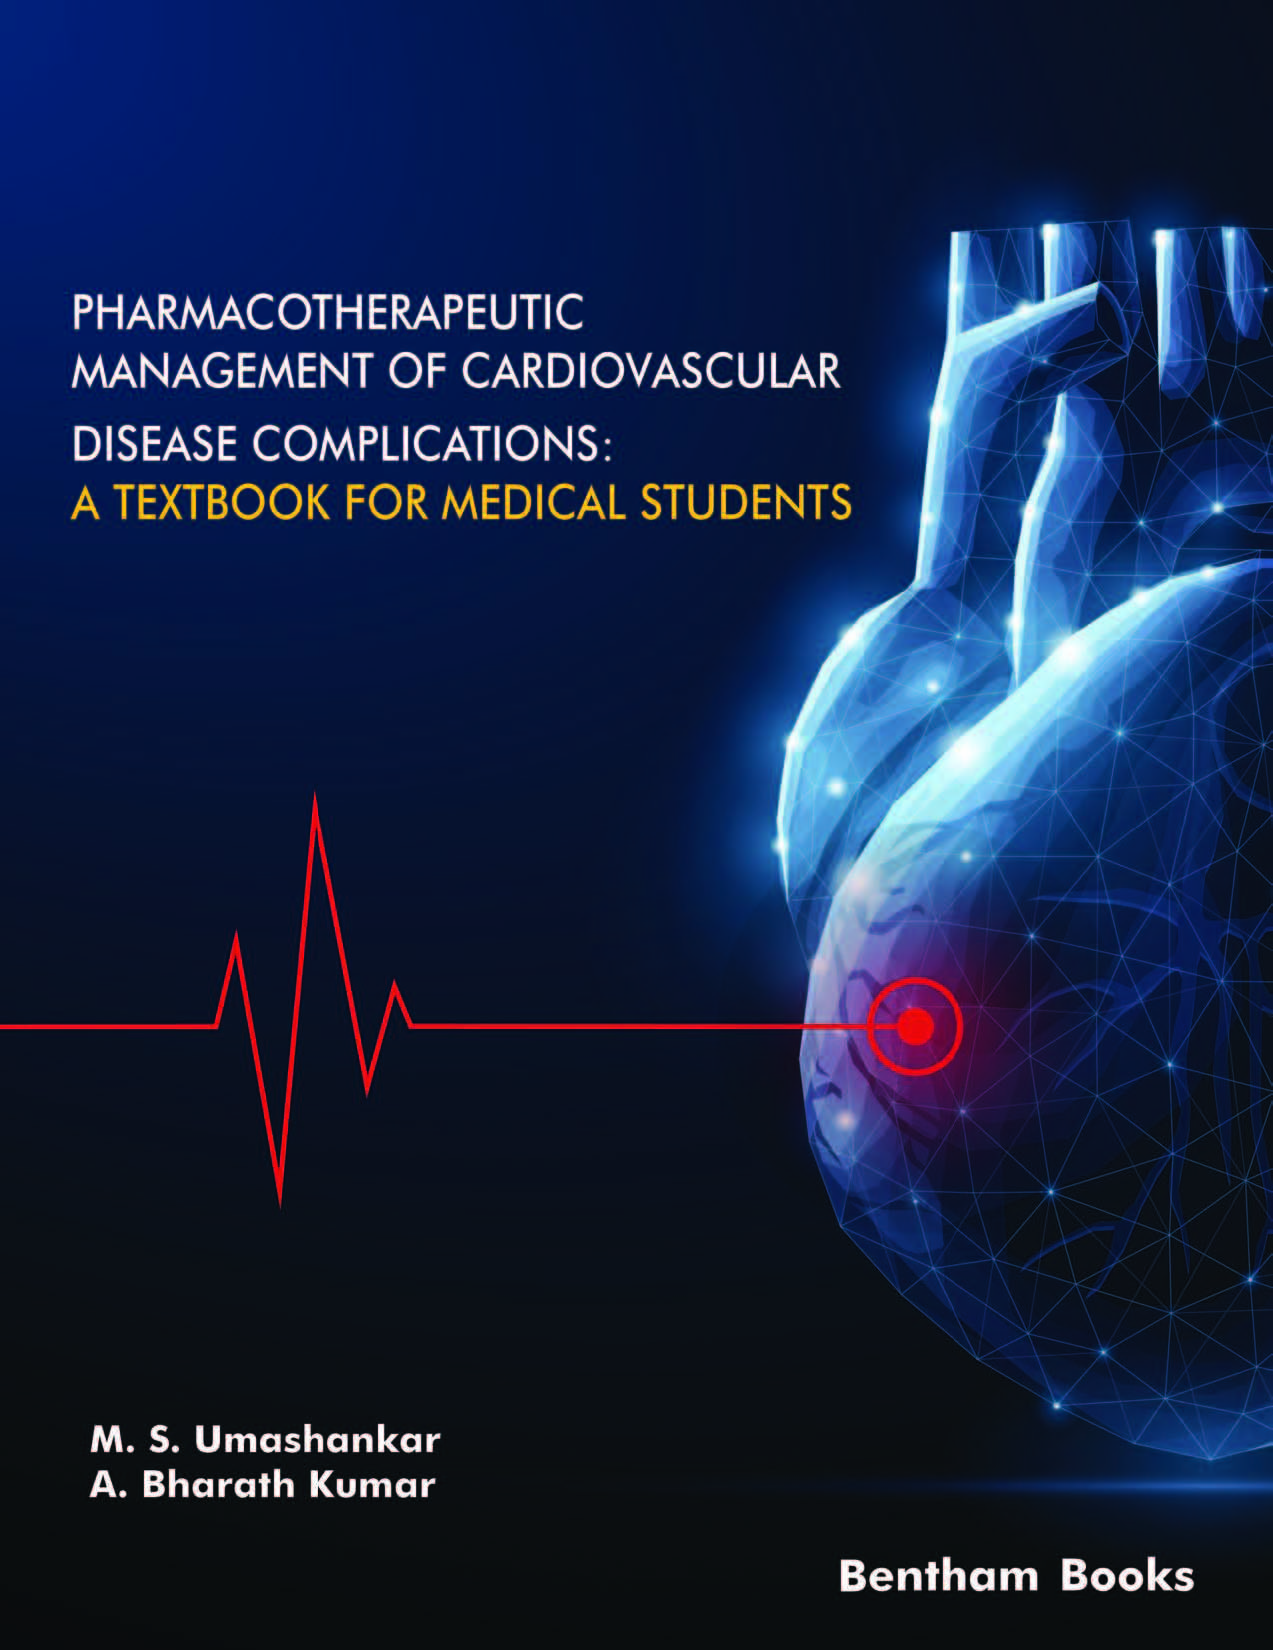 Pharmacotherapeutic Management of Cardiovascular Disease Complications: A Textbook for Medical Students